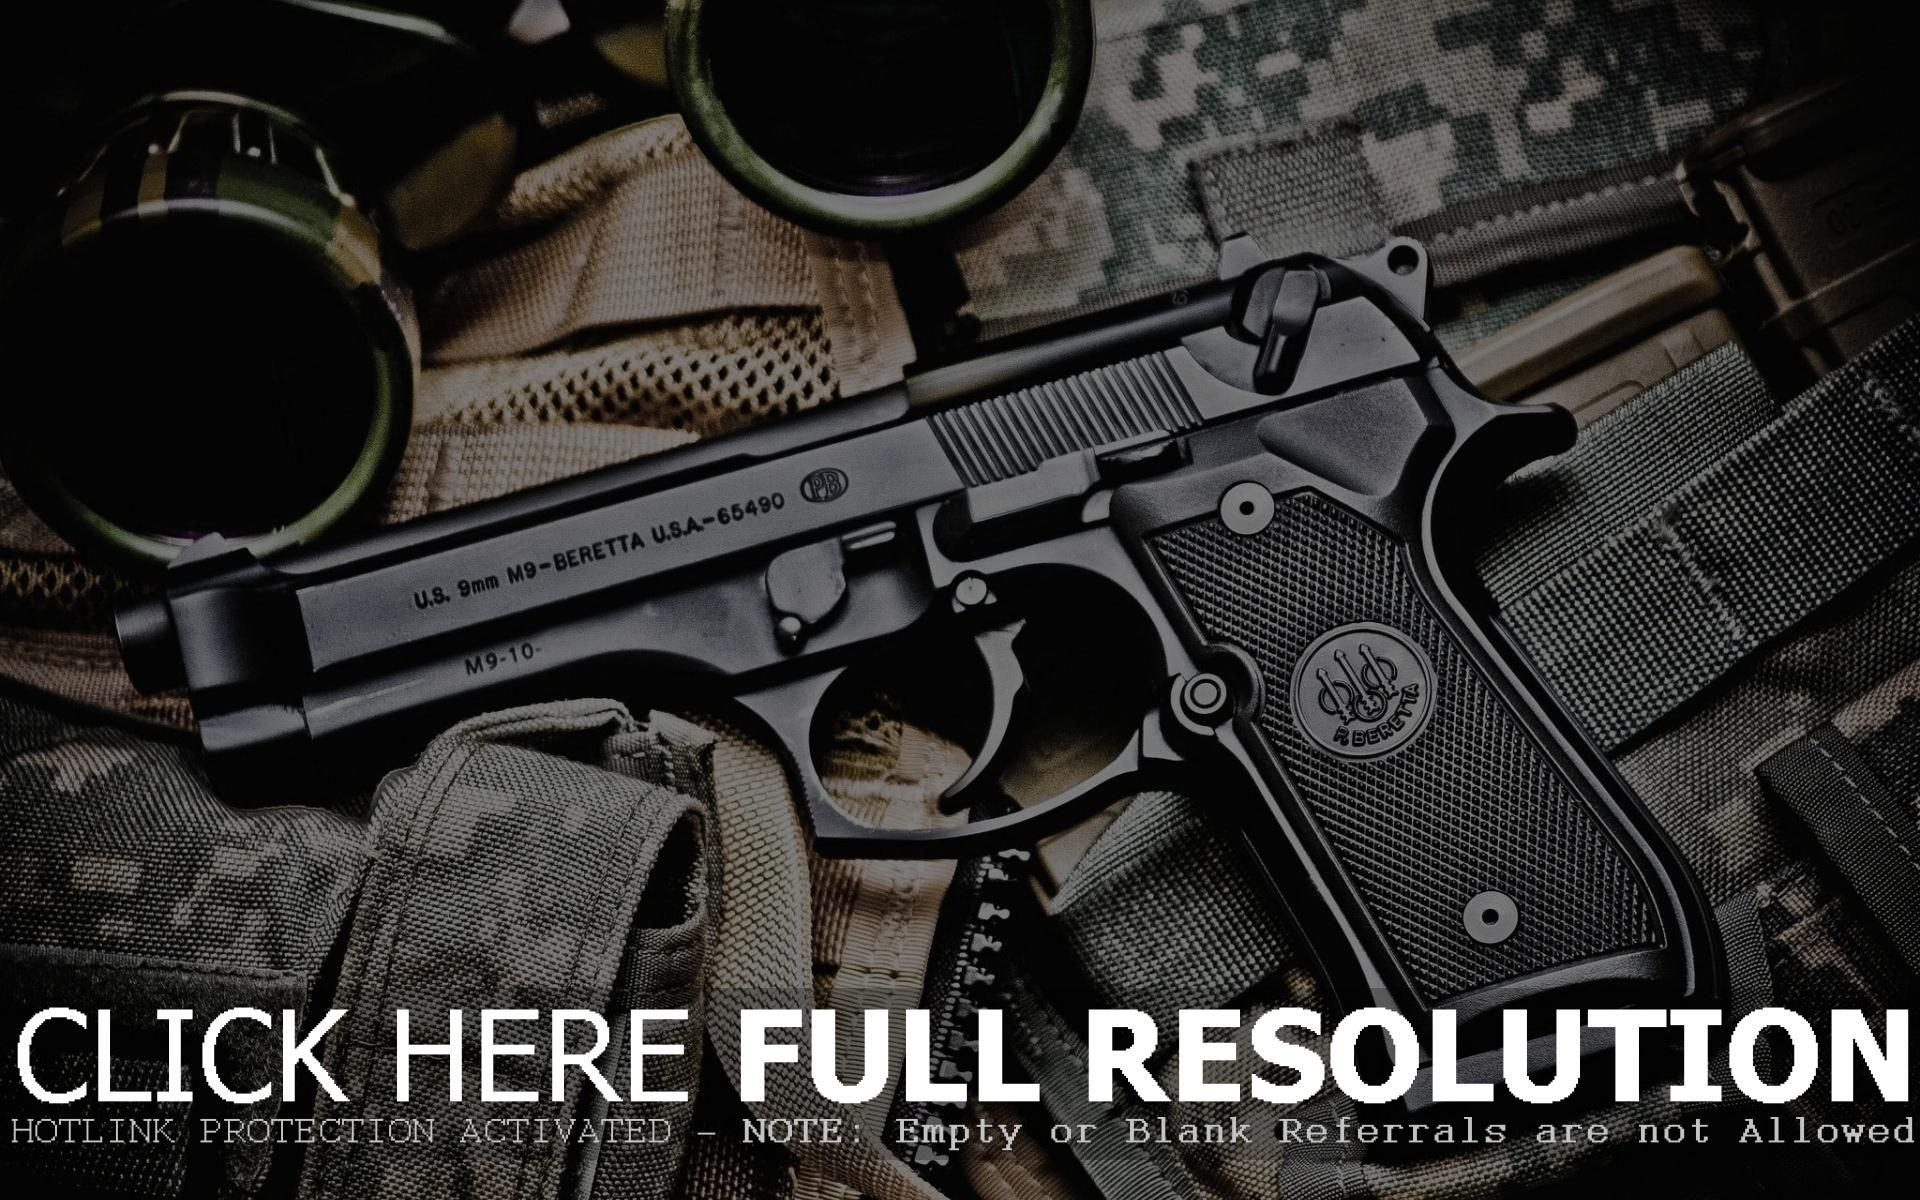 Beretta G Brigadier Tactical Hunting Sports Background 851x600 Wallpapers 32